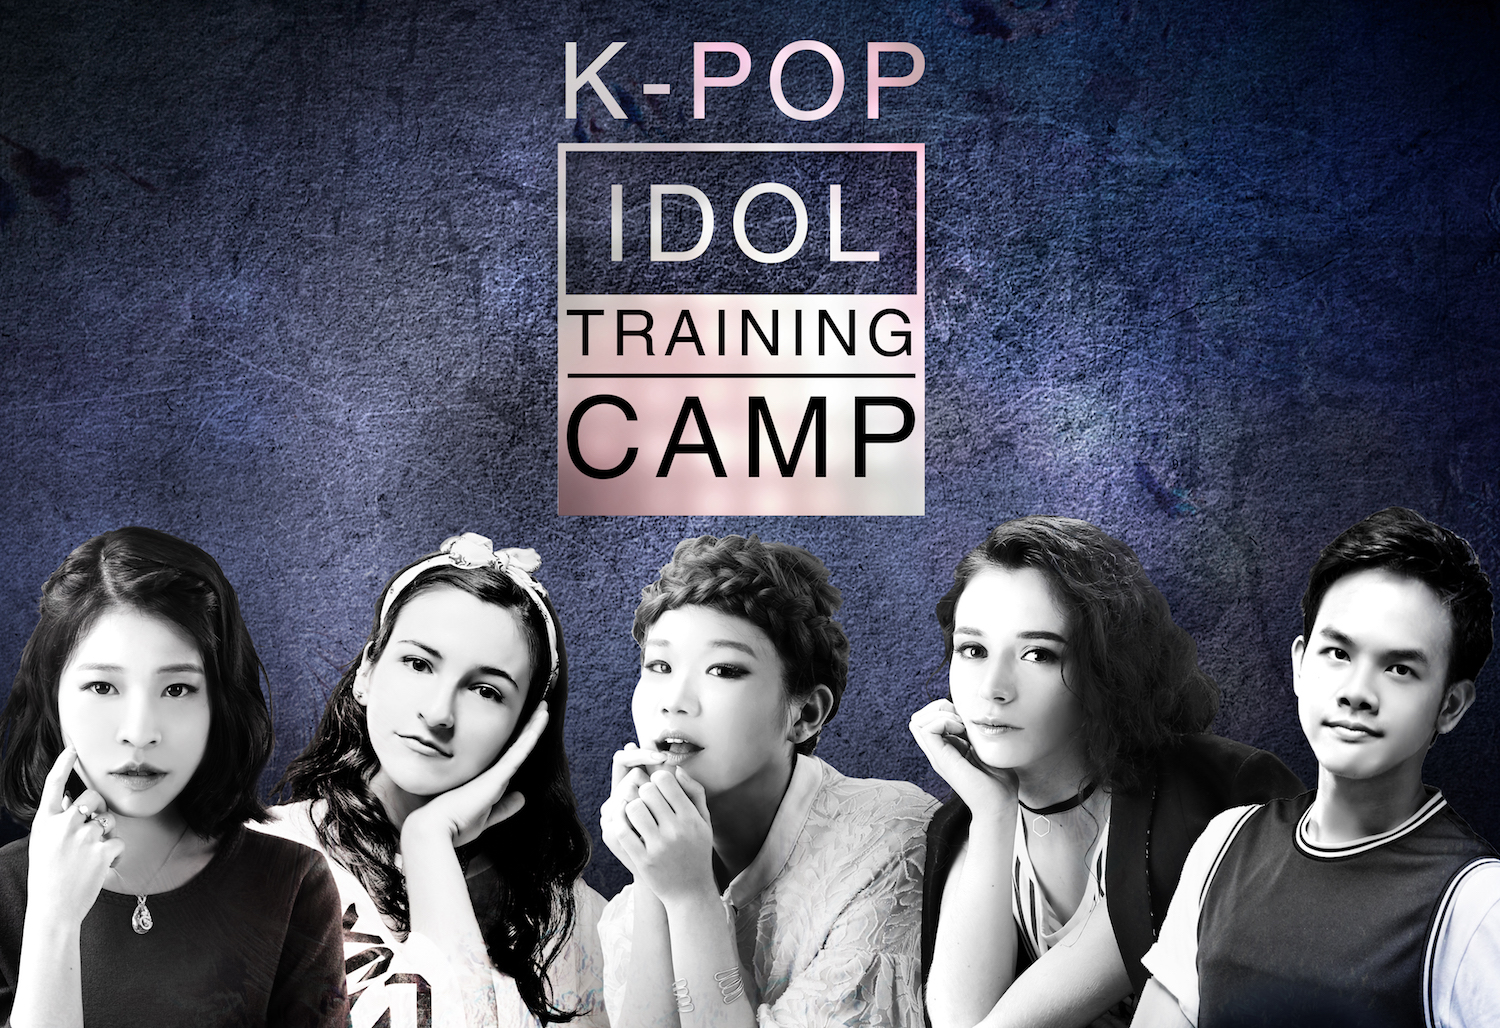 Secret9's K-pop Training Camp: Learn K-pop from the Pros!